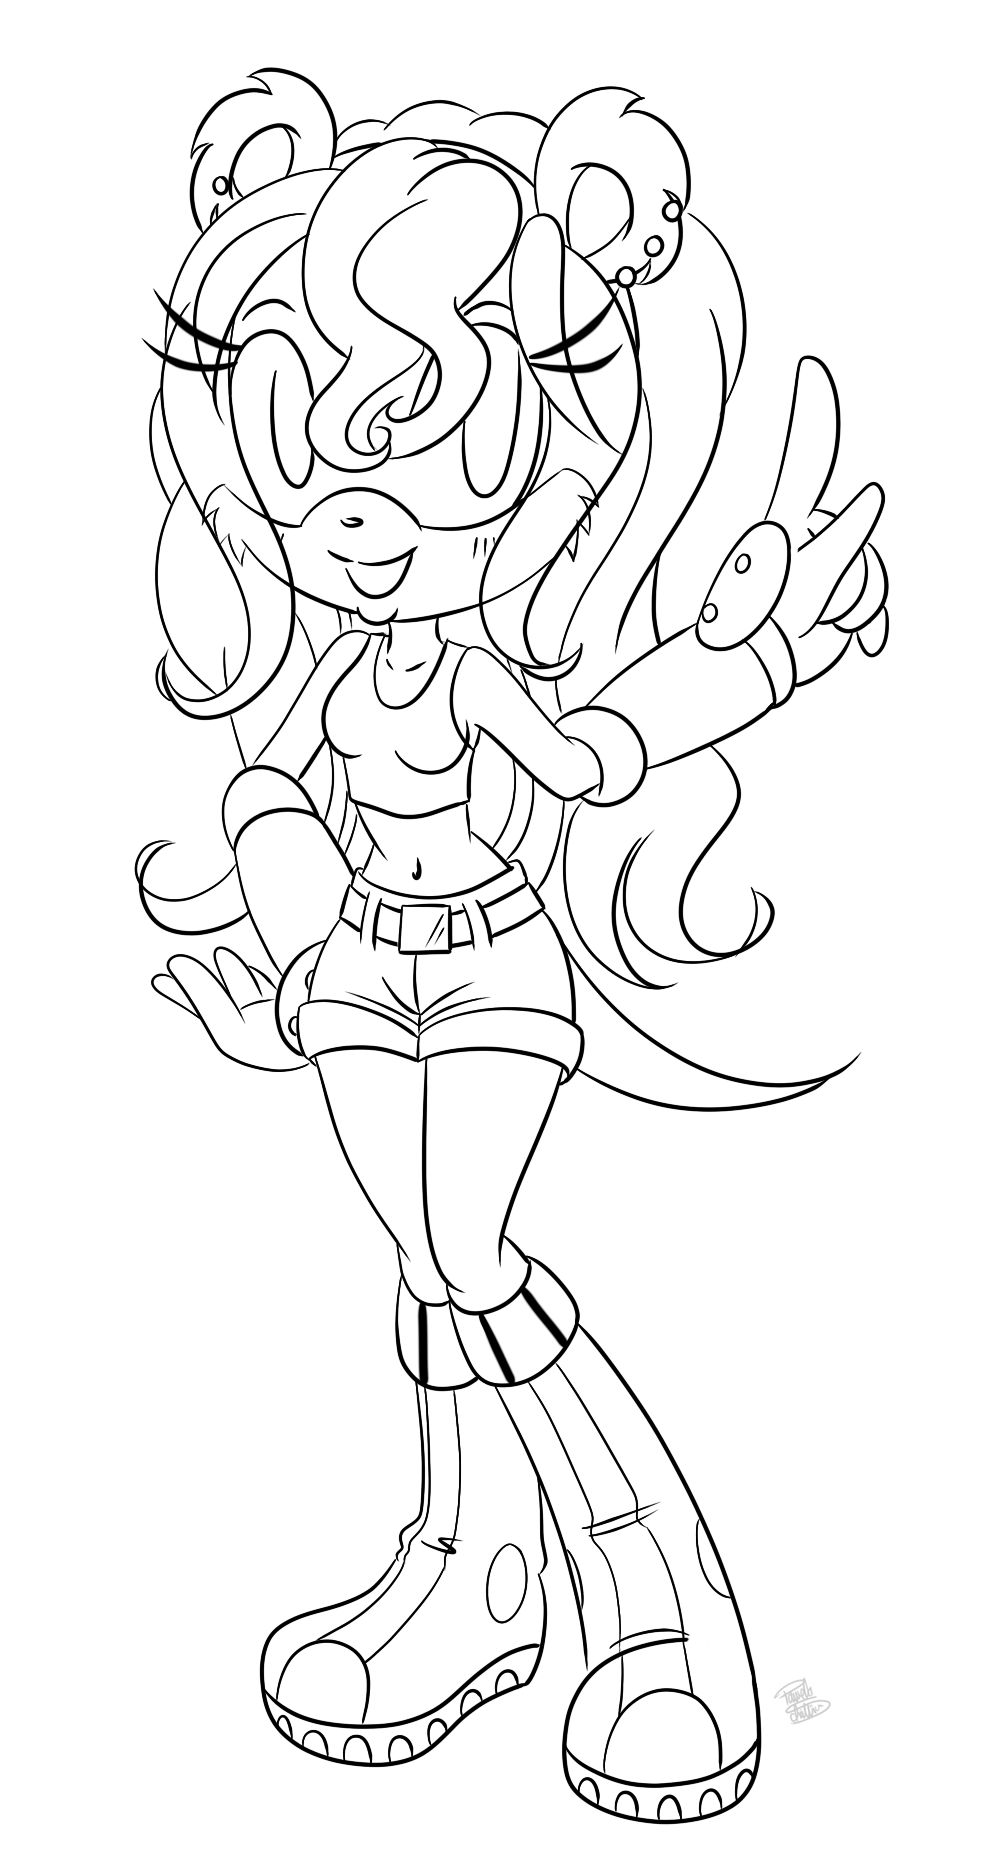 Mina mongoose lineart by zykalia on deviantart for Mongoose coloring page